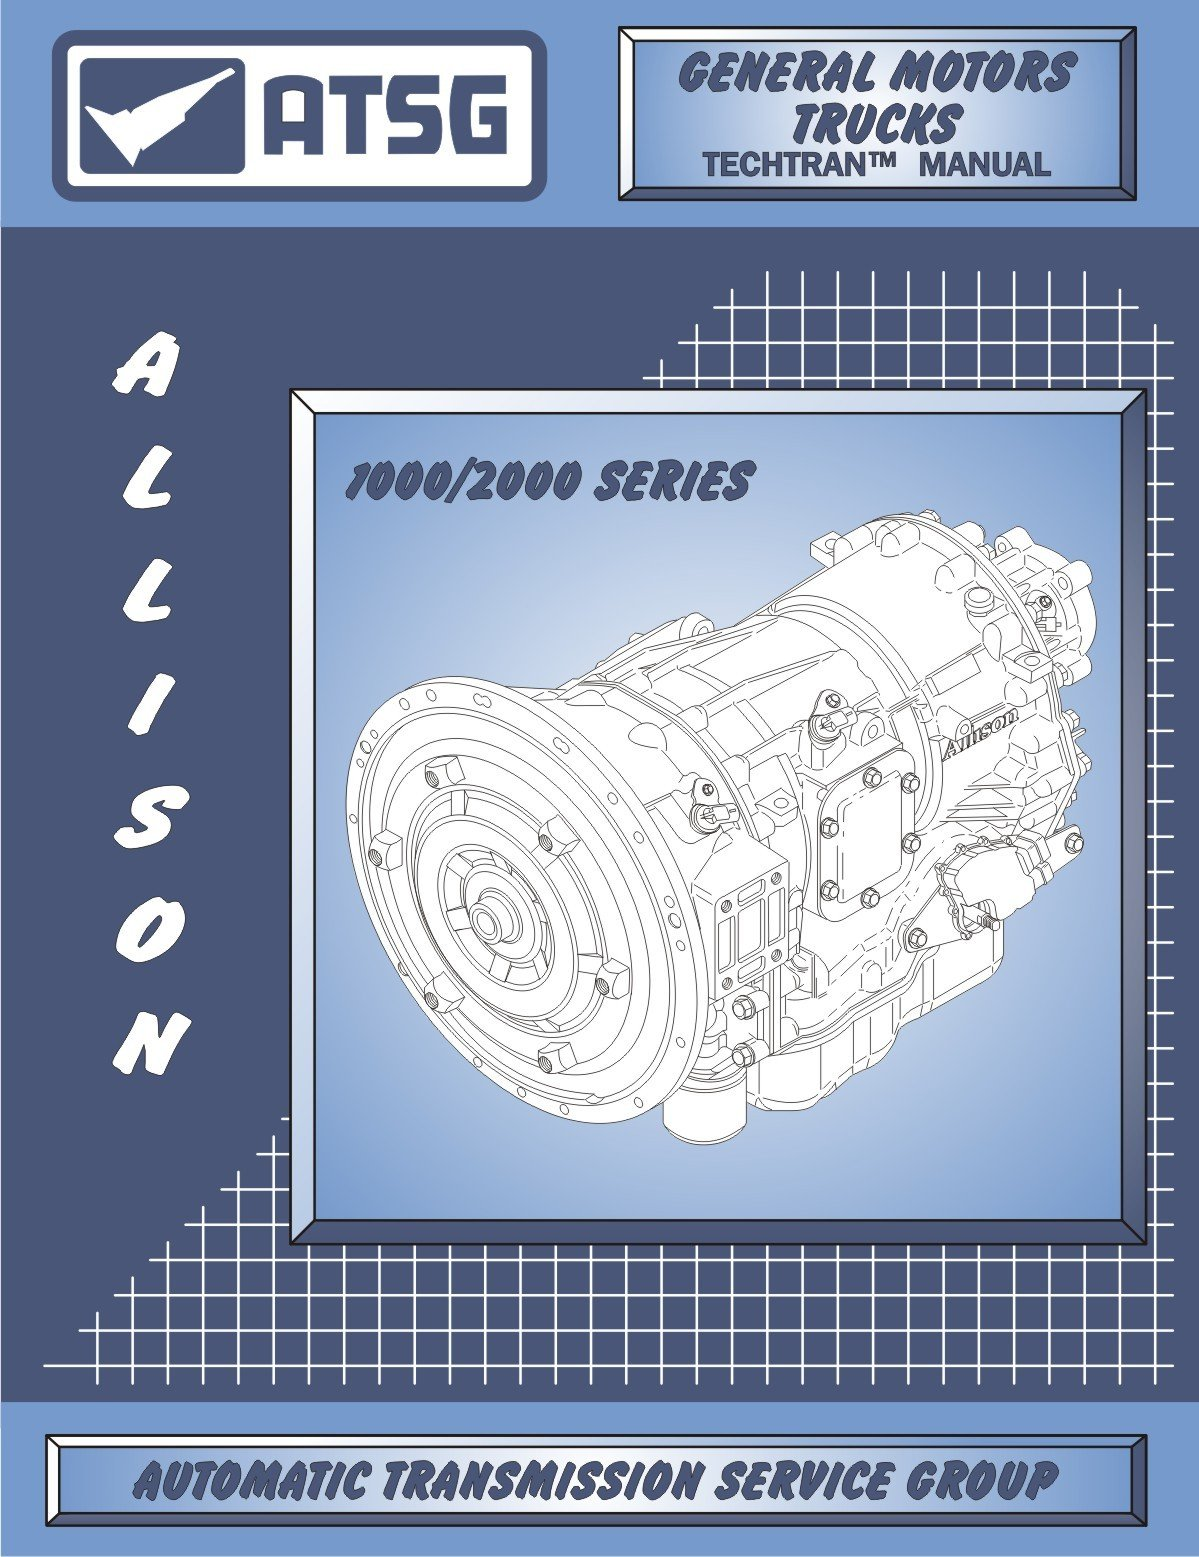 Atsg gm allison 1000 2000 techtran transmission rebuild manual atsg gm allison 1000 2000 techtran transmission rebuild manual t1000 t2000 automatic transmission service group amazon books fandeluxe Image collections